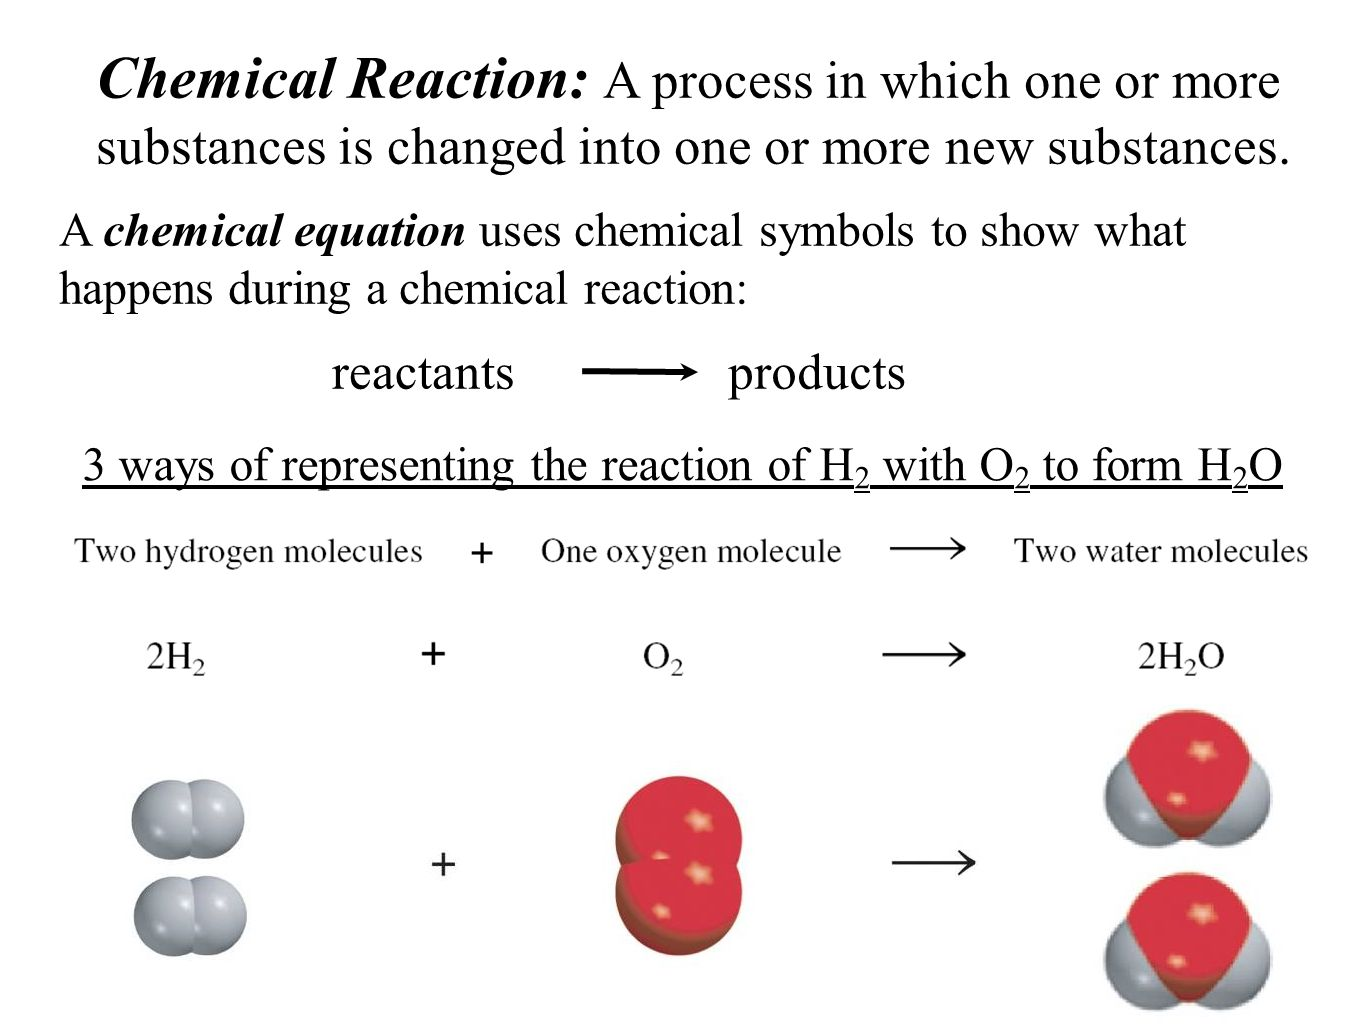 Mass relationships in chemical reactions ppt download 51 3 buycottarizona Image collections